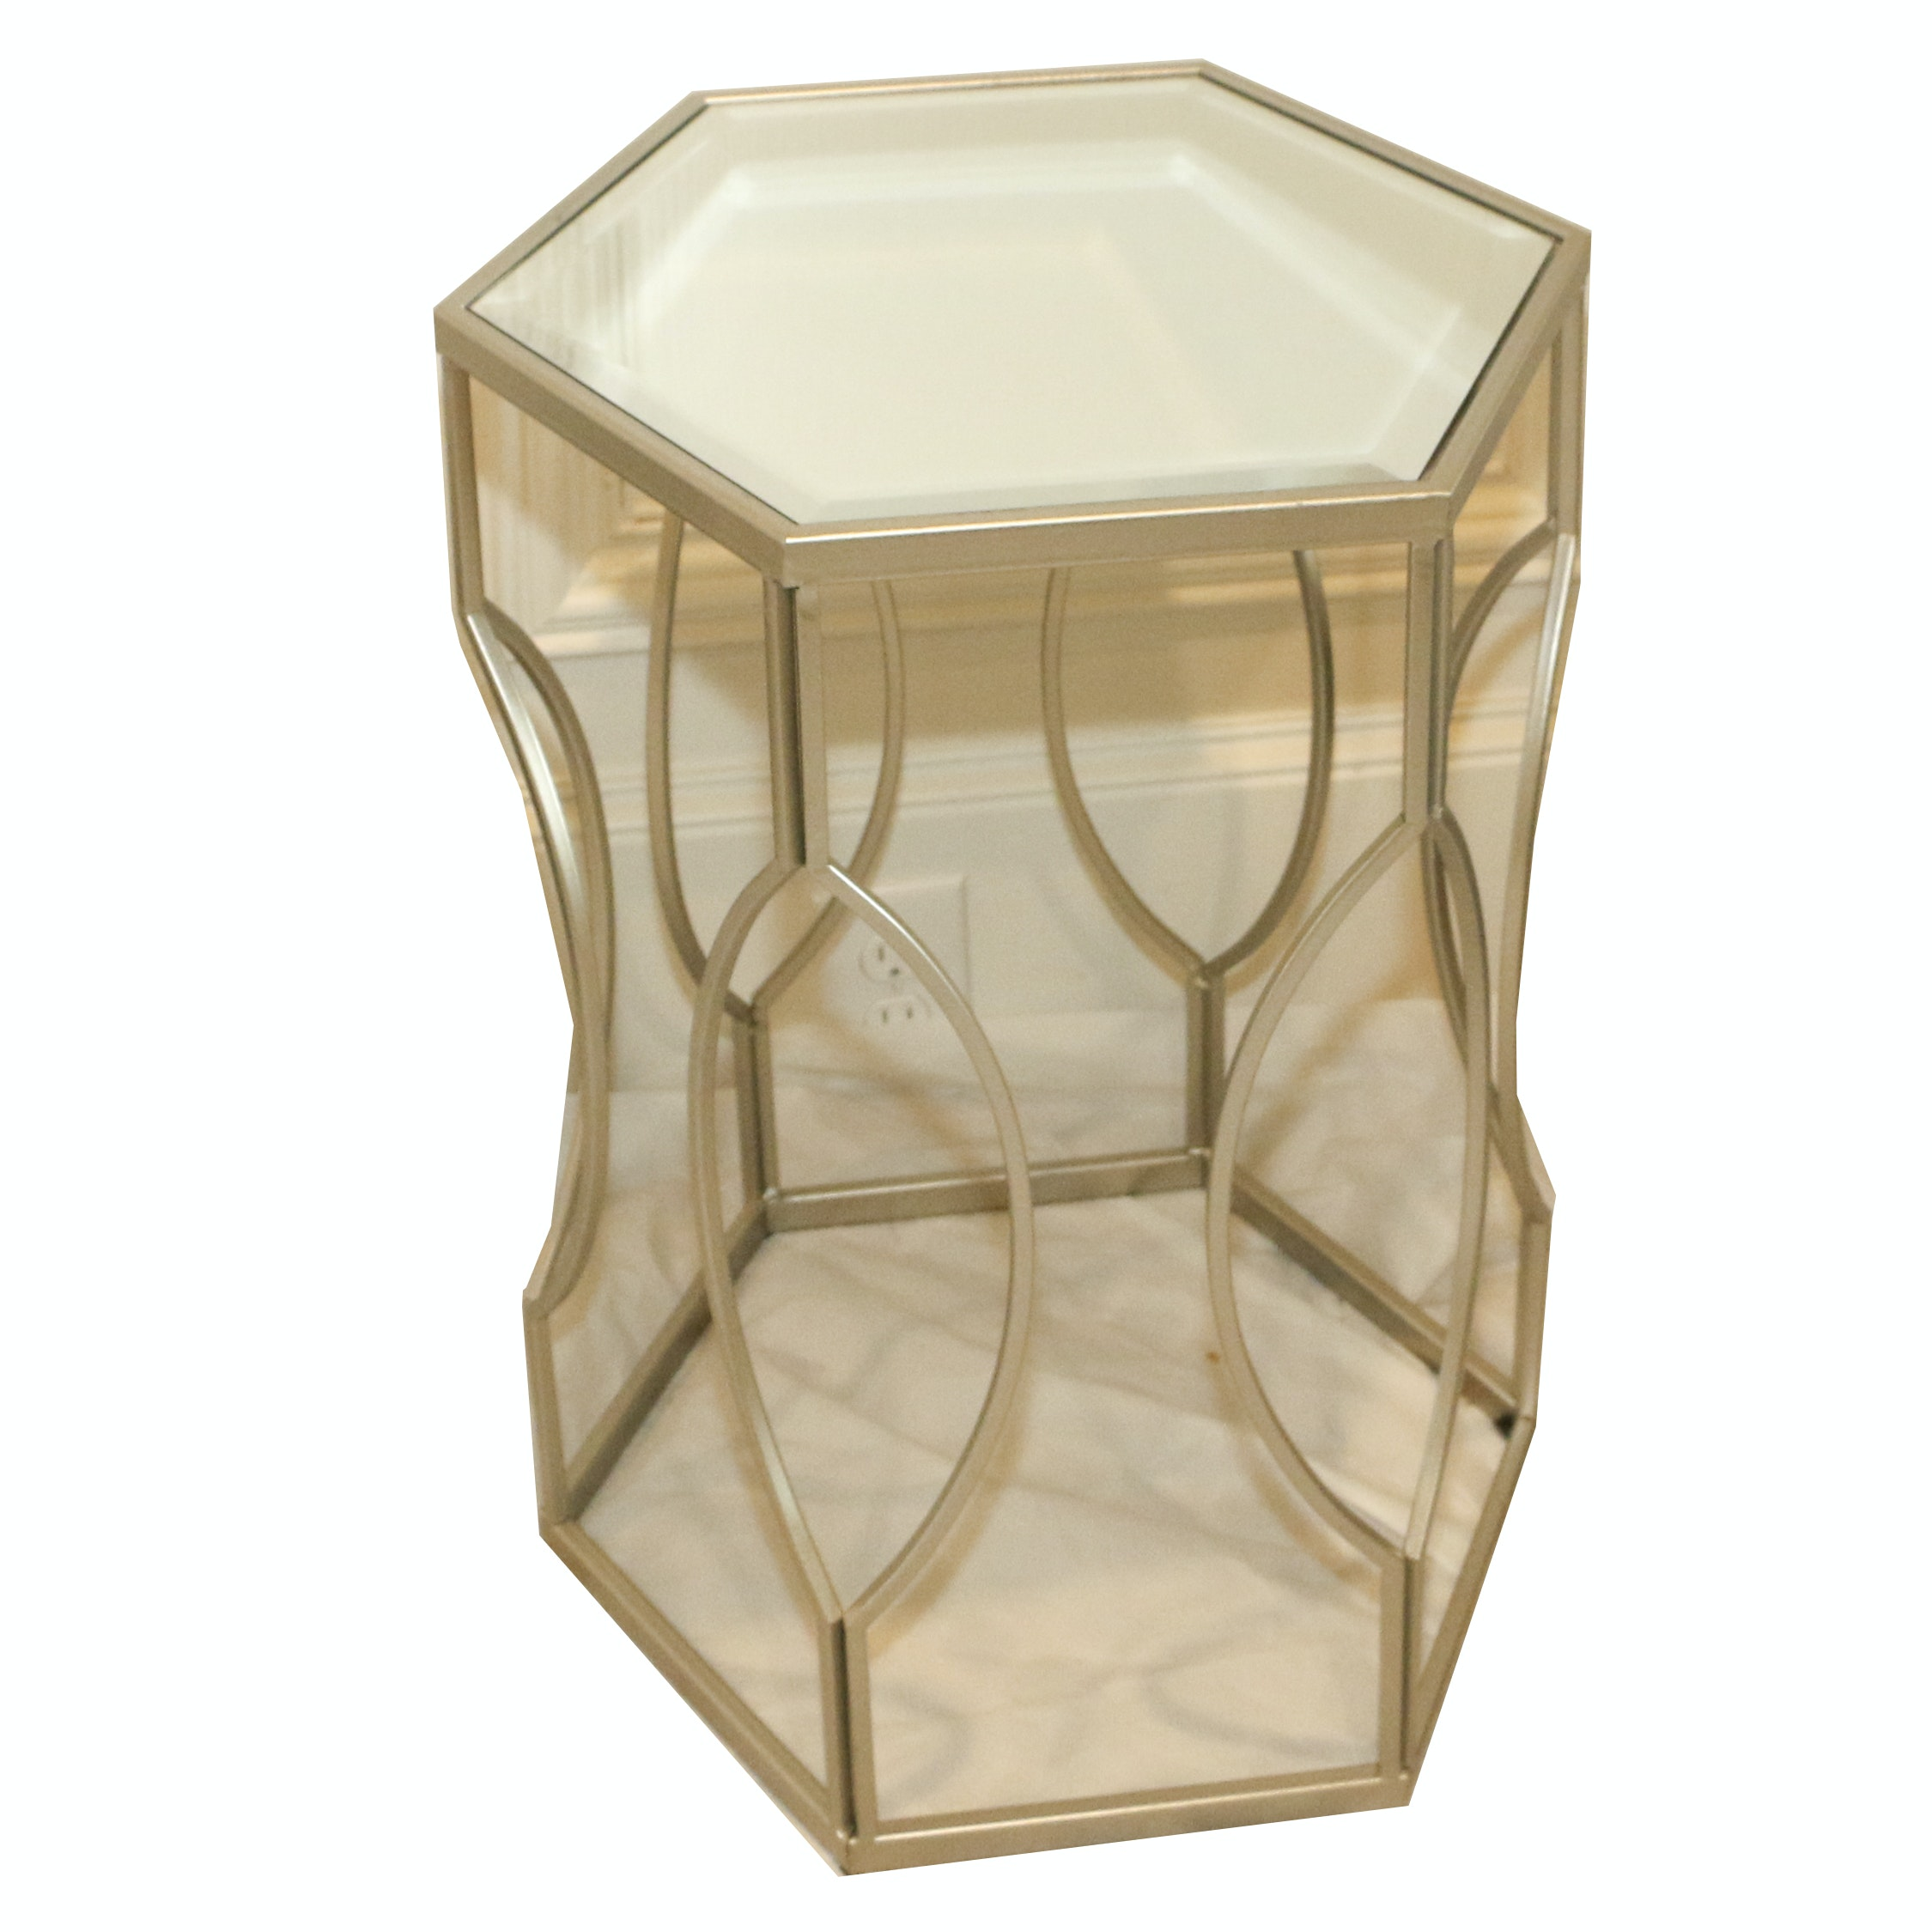 Metal Side Table with Mirror Top Panel, 21st Century